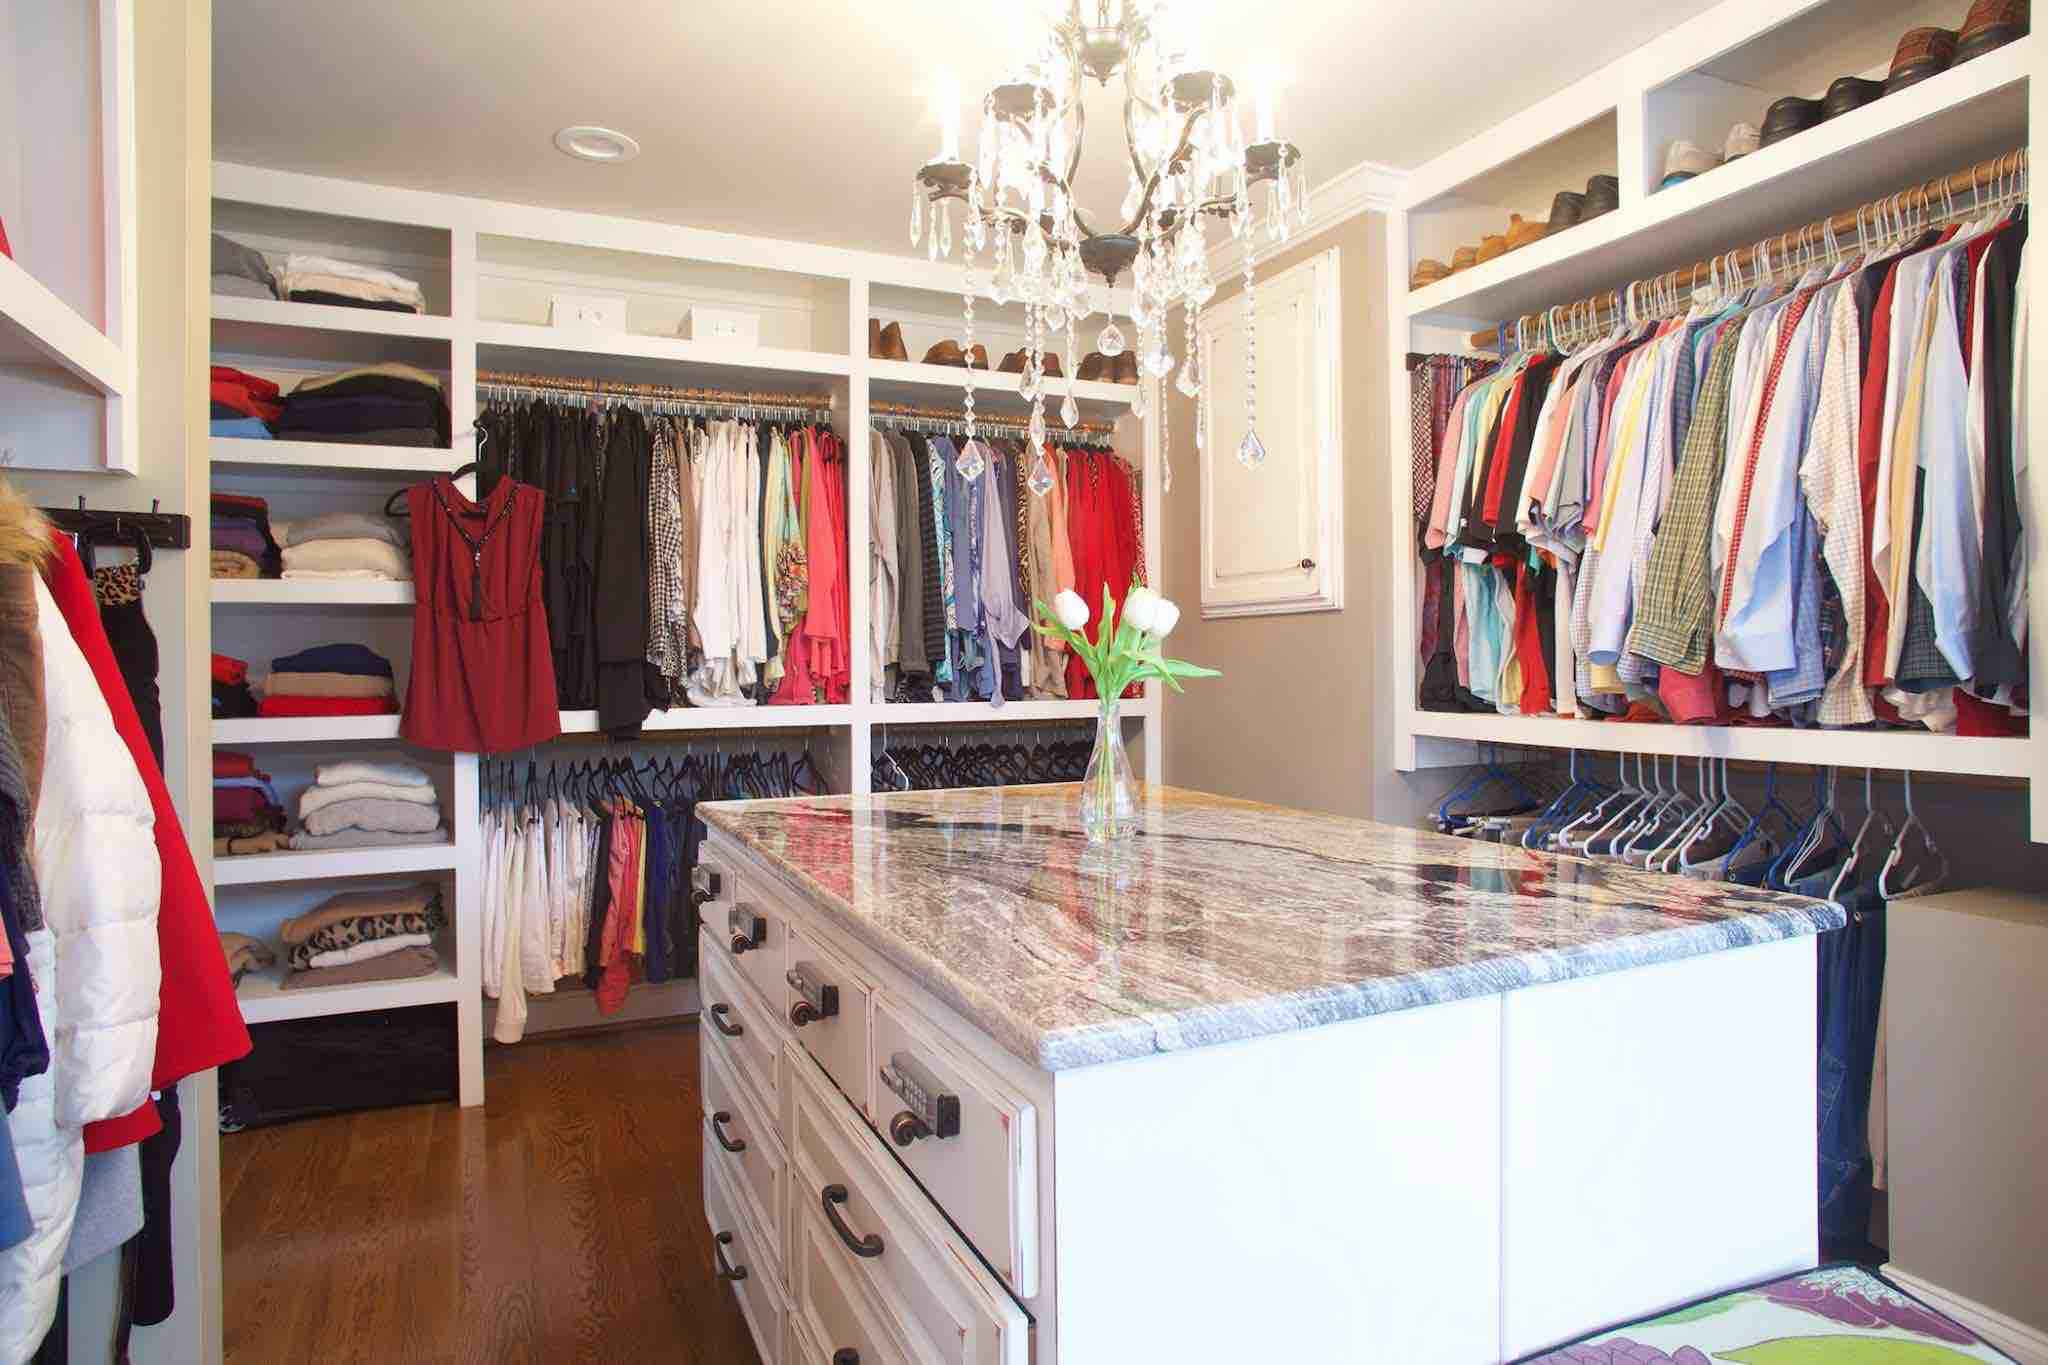 180 Spaces | Interior Design Turnarounds - Master Closet with custom island, keyed entry jewelry drawers & a sexy little black chandelier!